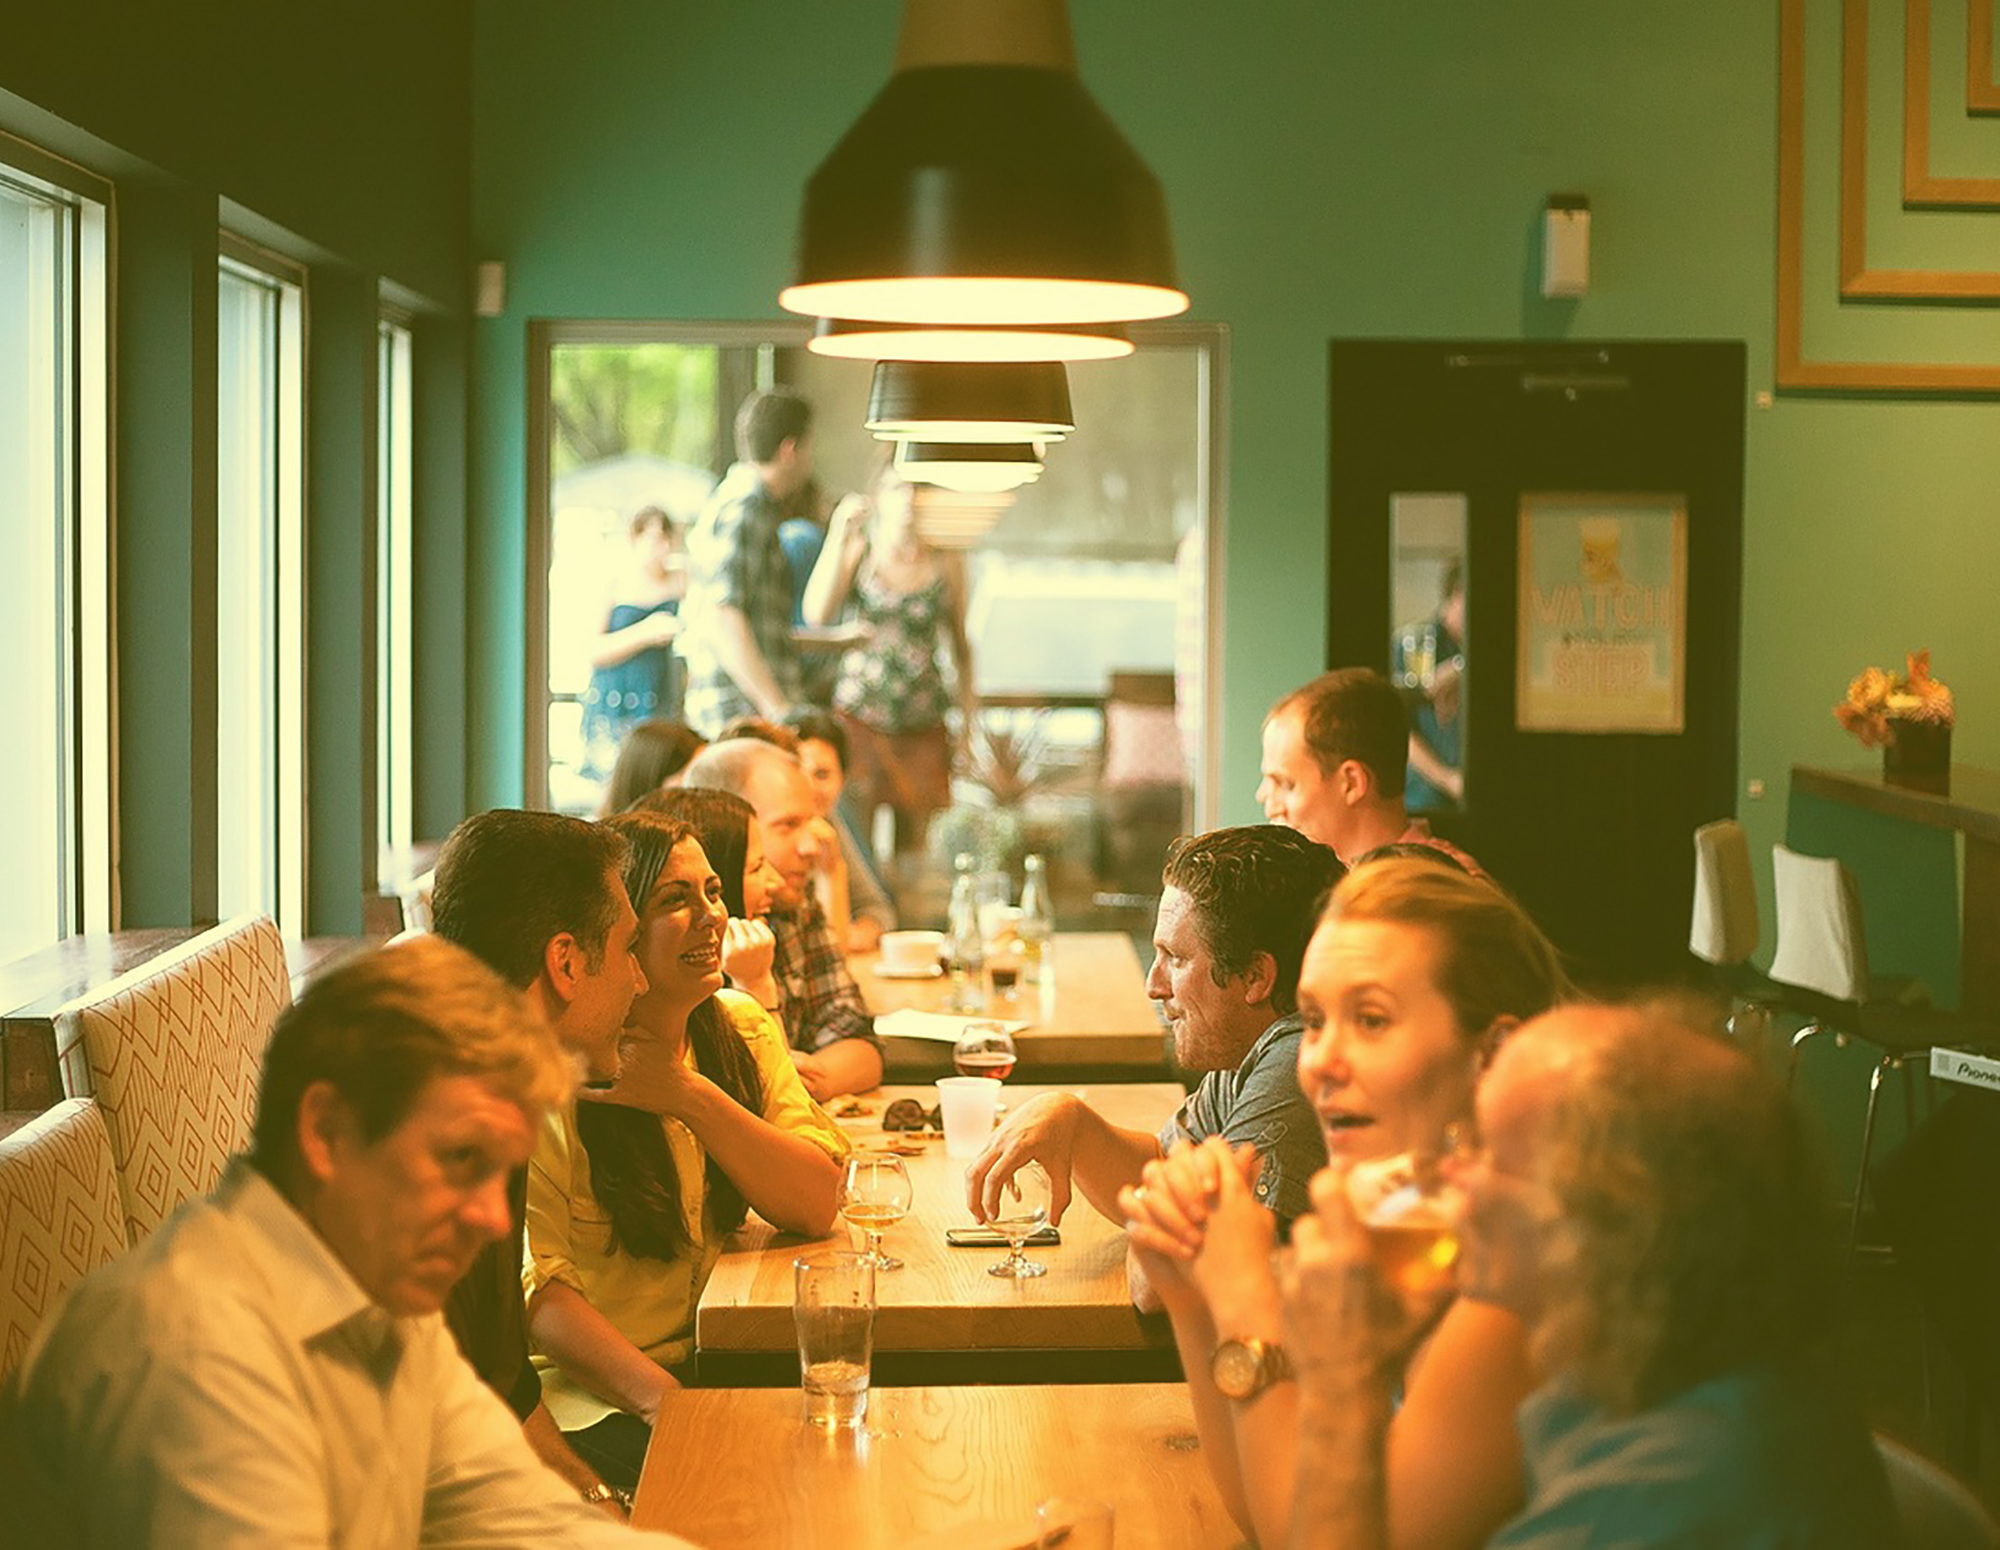 EASE Customer Service Training: Restaurants